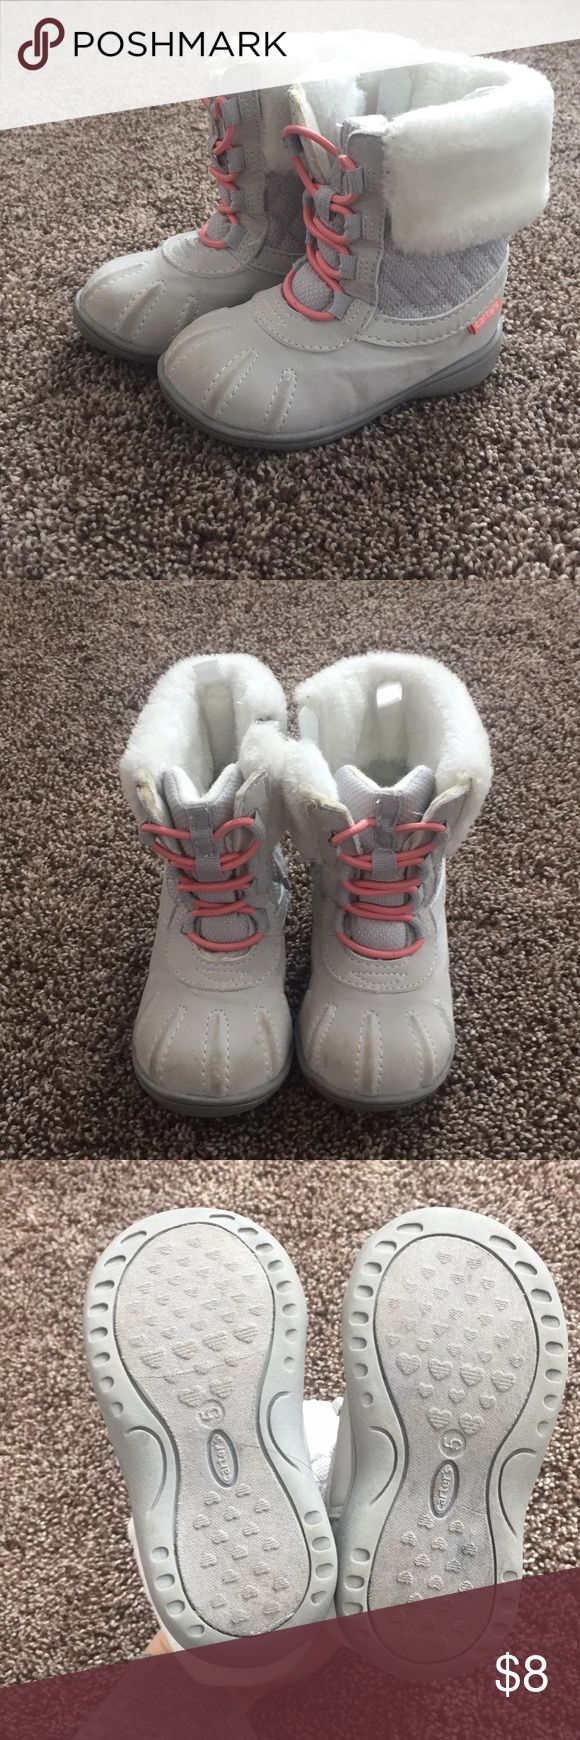 Adorable baby girl snow boots Size 5 Carters baby girl snow boots. Light wear. Carter's Shoes Rain & Snow Boots #babyrainboots